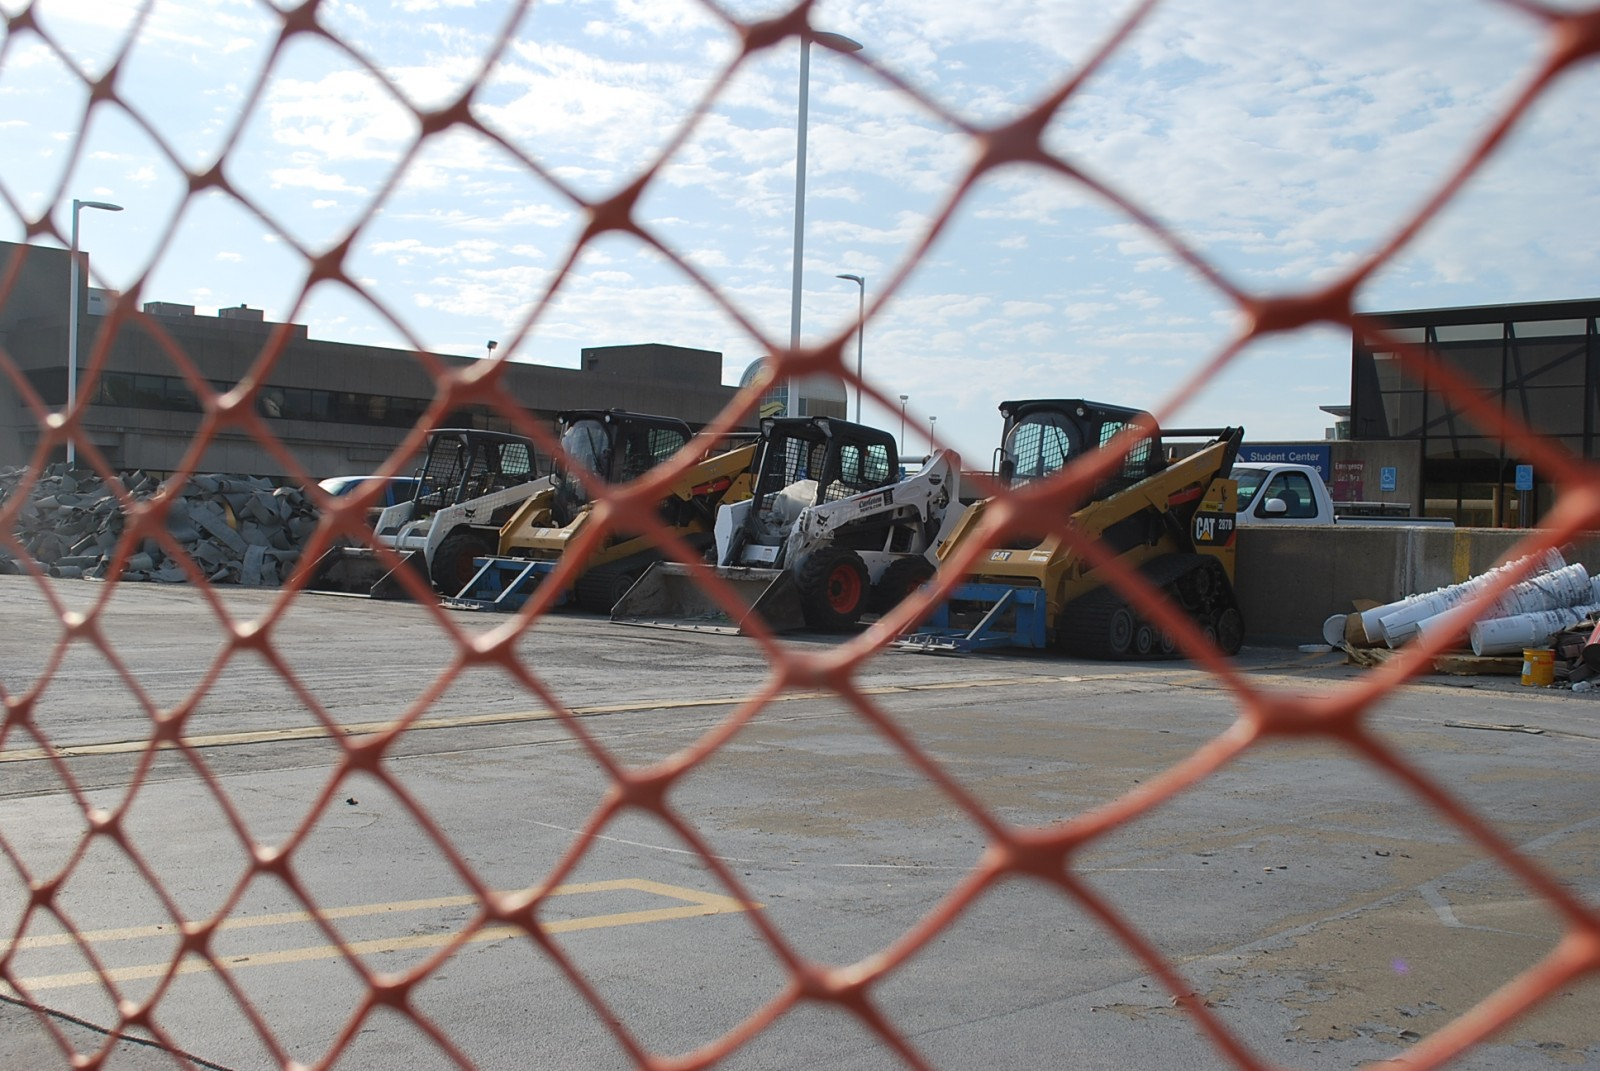 Construction is being done on the Bostwick Parking Ramp through next week.